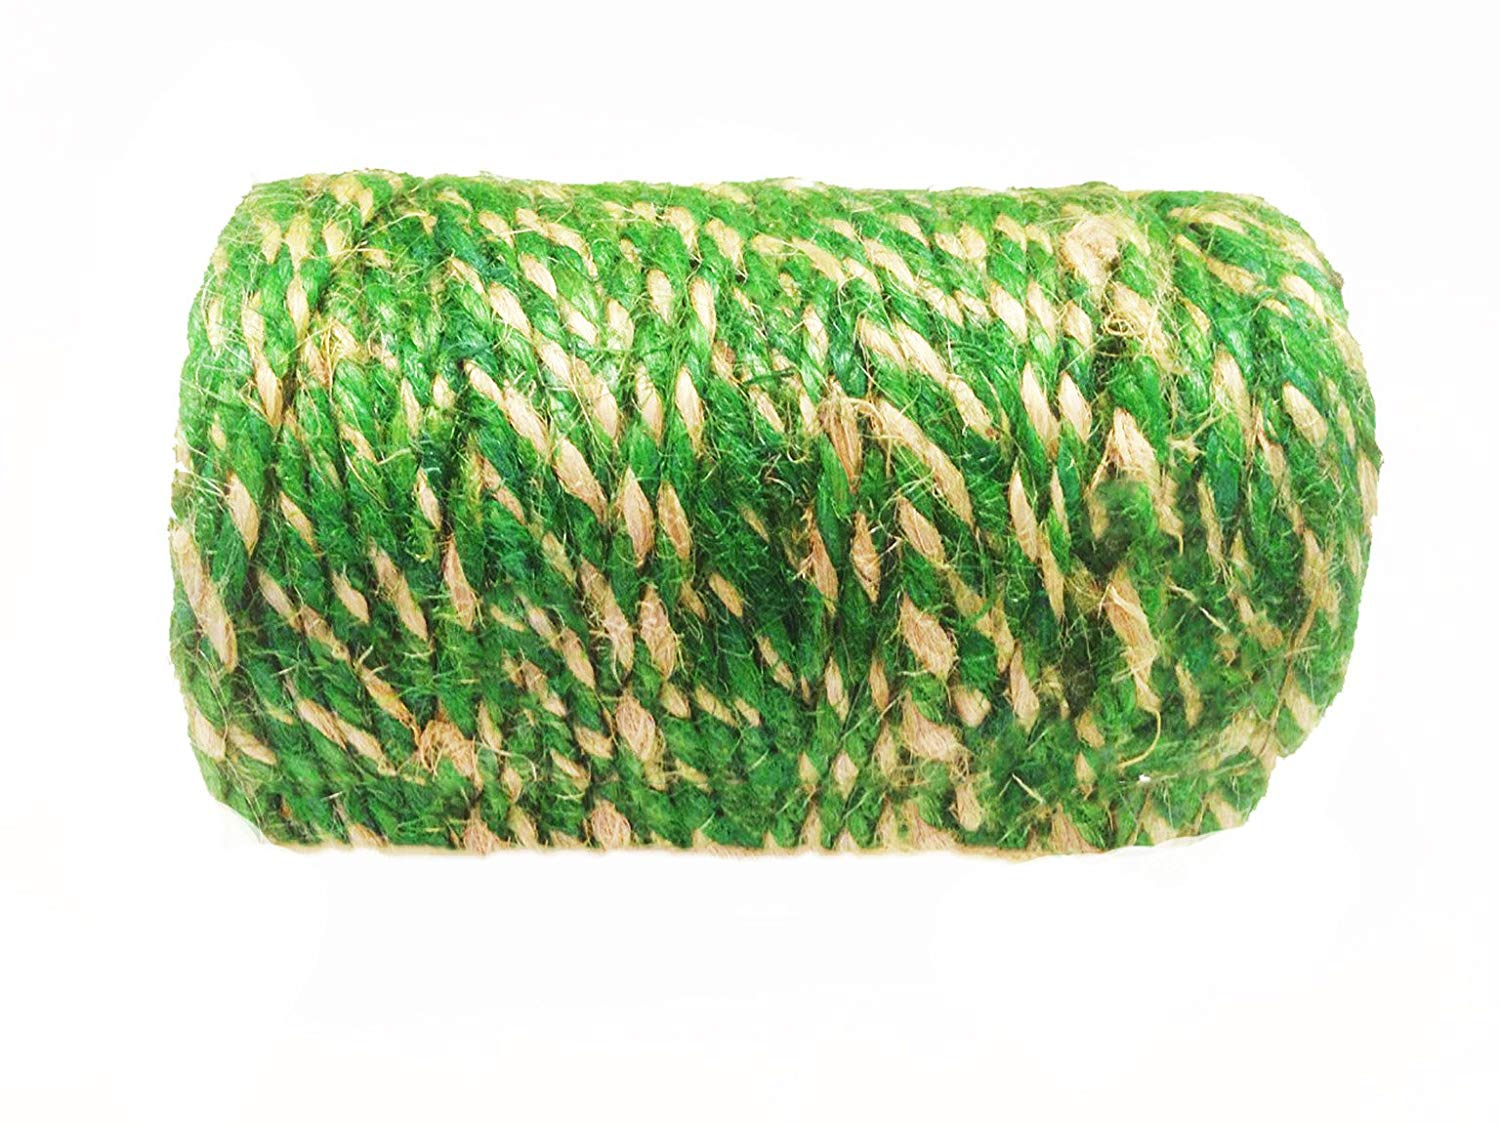 AAYU Jute Twine 3ply 200 feet | Green and Natural Twisted Yarn | Garden Jute Rope for Planters | Perfect Match for Vine